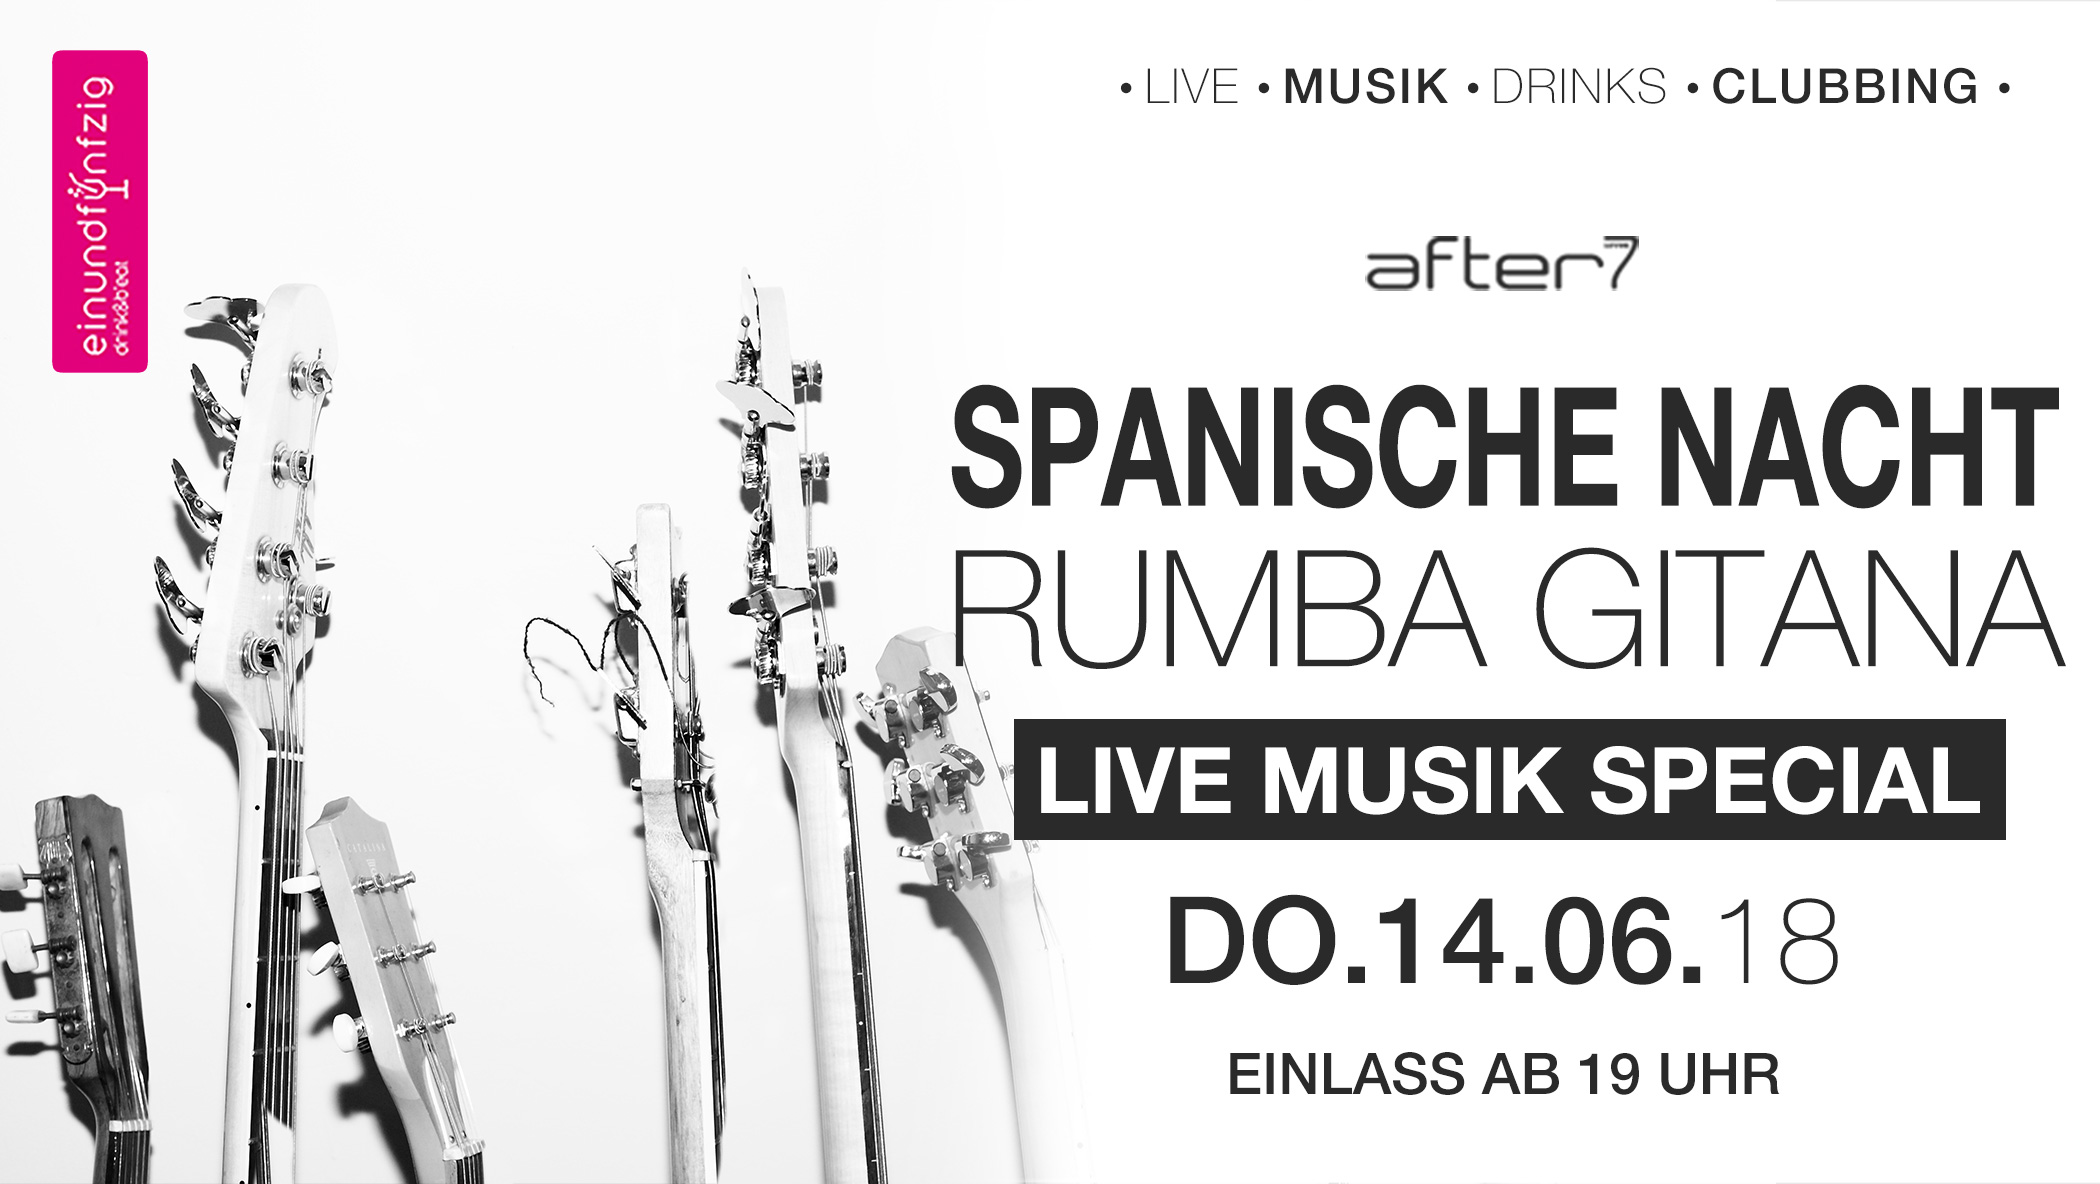 Do. 14.06.2018 SPANISCHE NACHT @After7